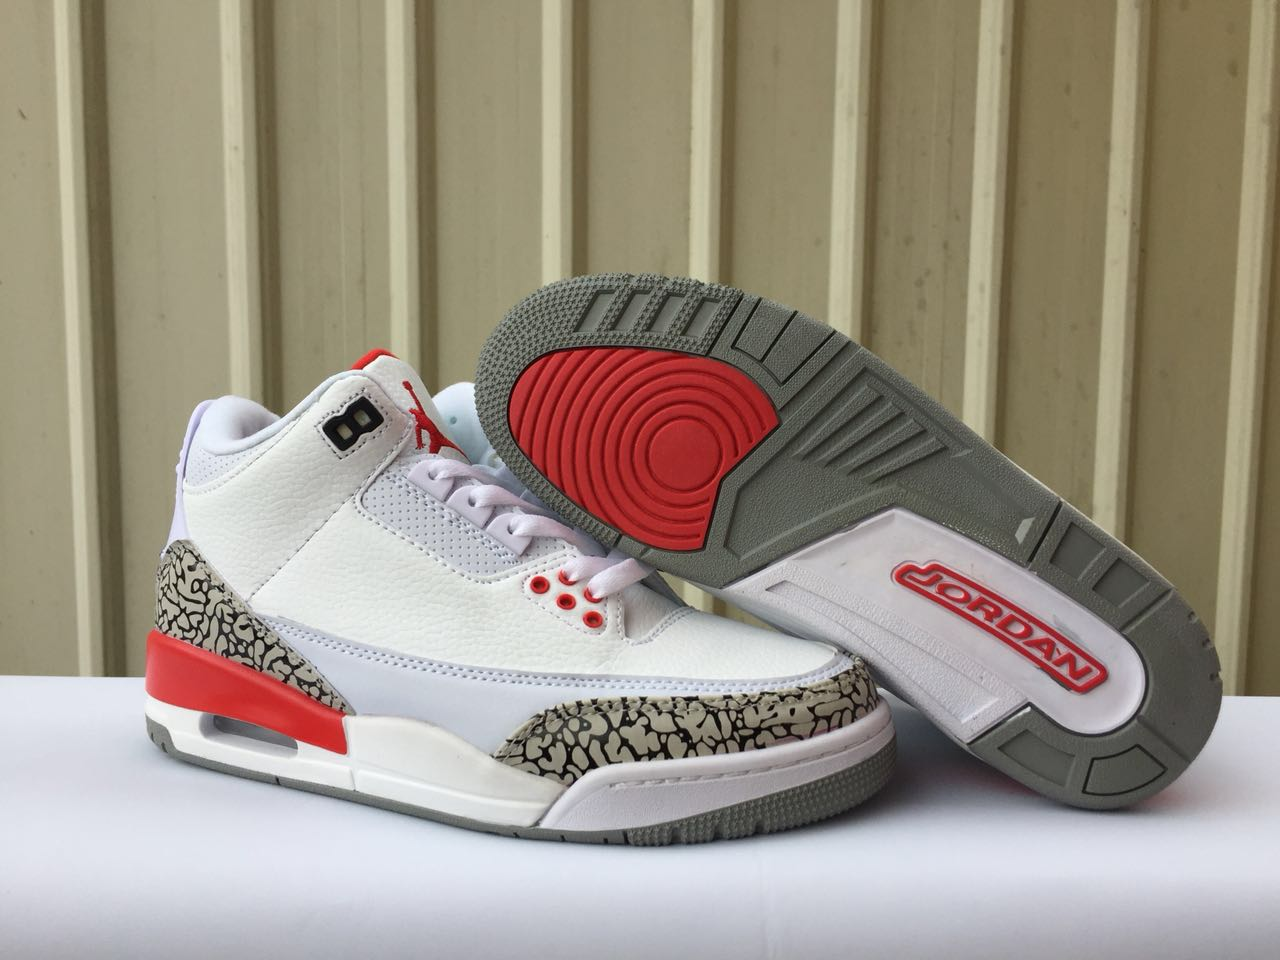 New Air Jordan 3 Retro Cement White Red